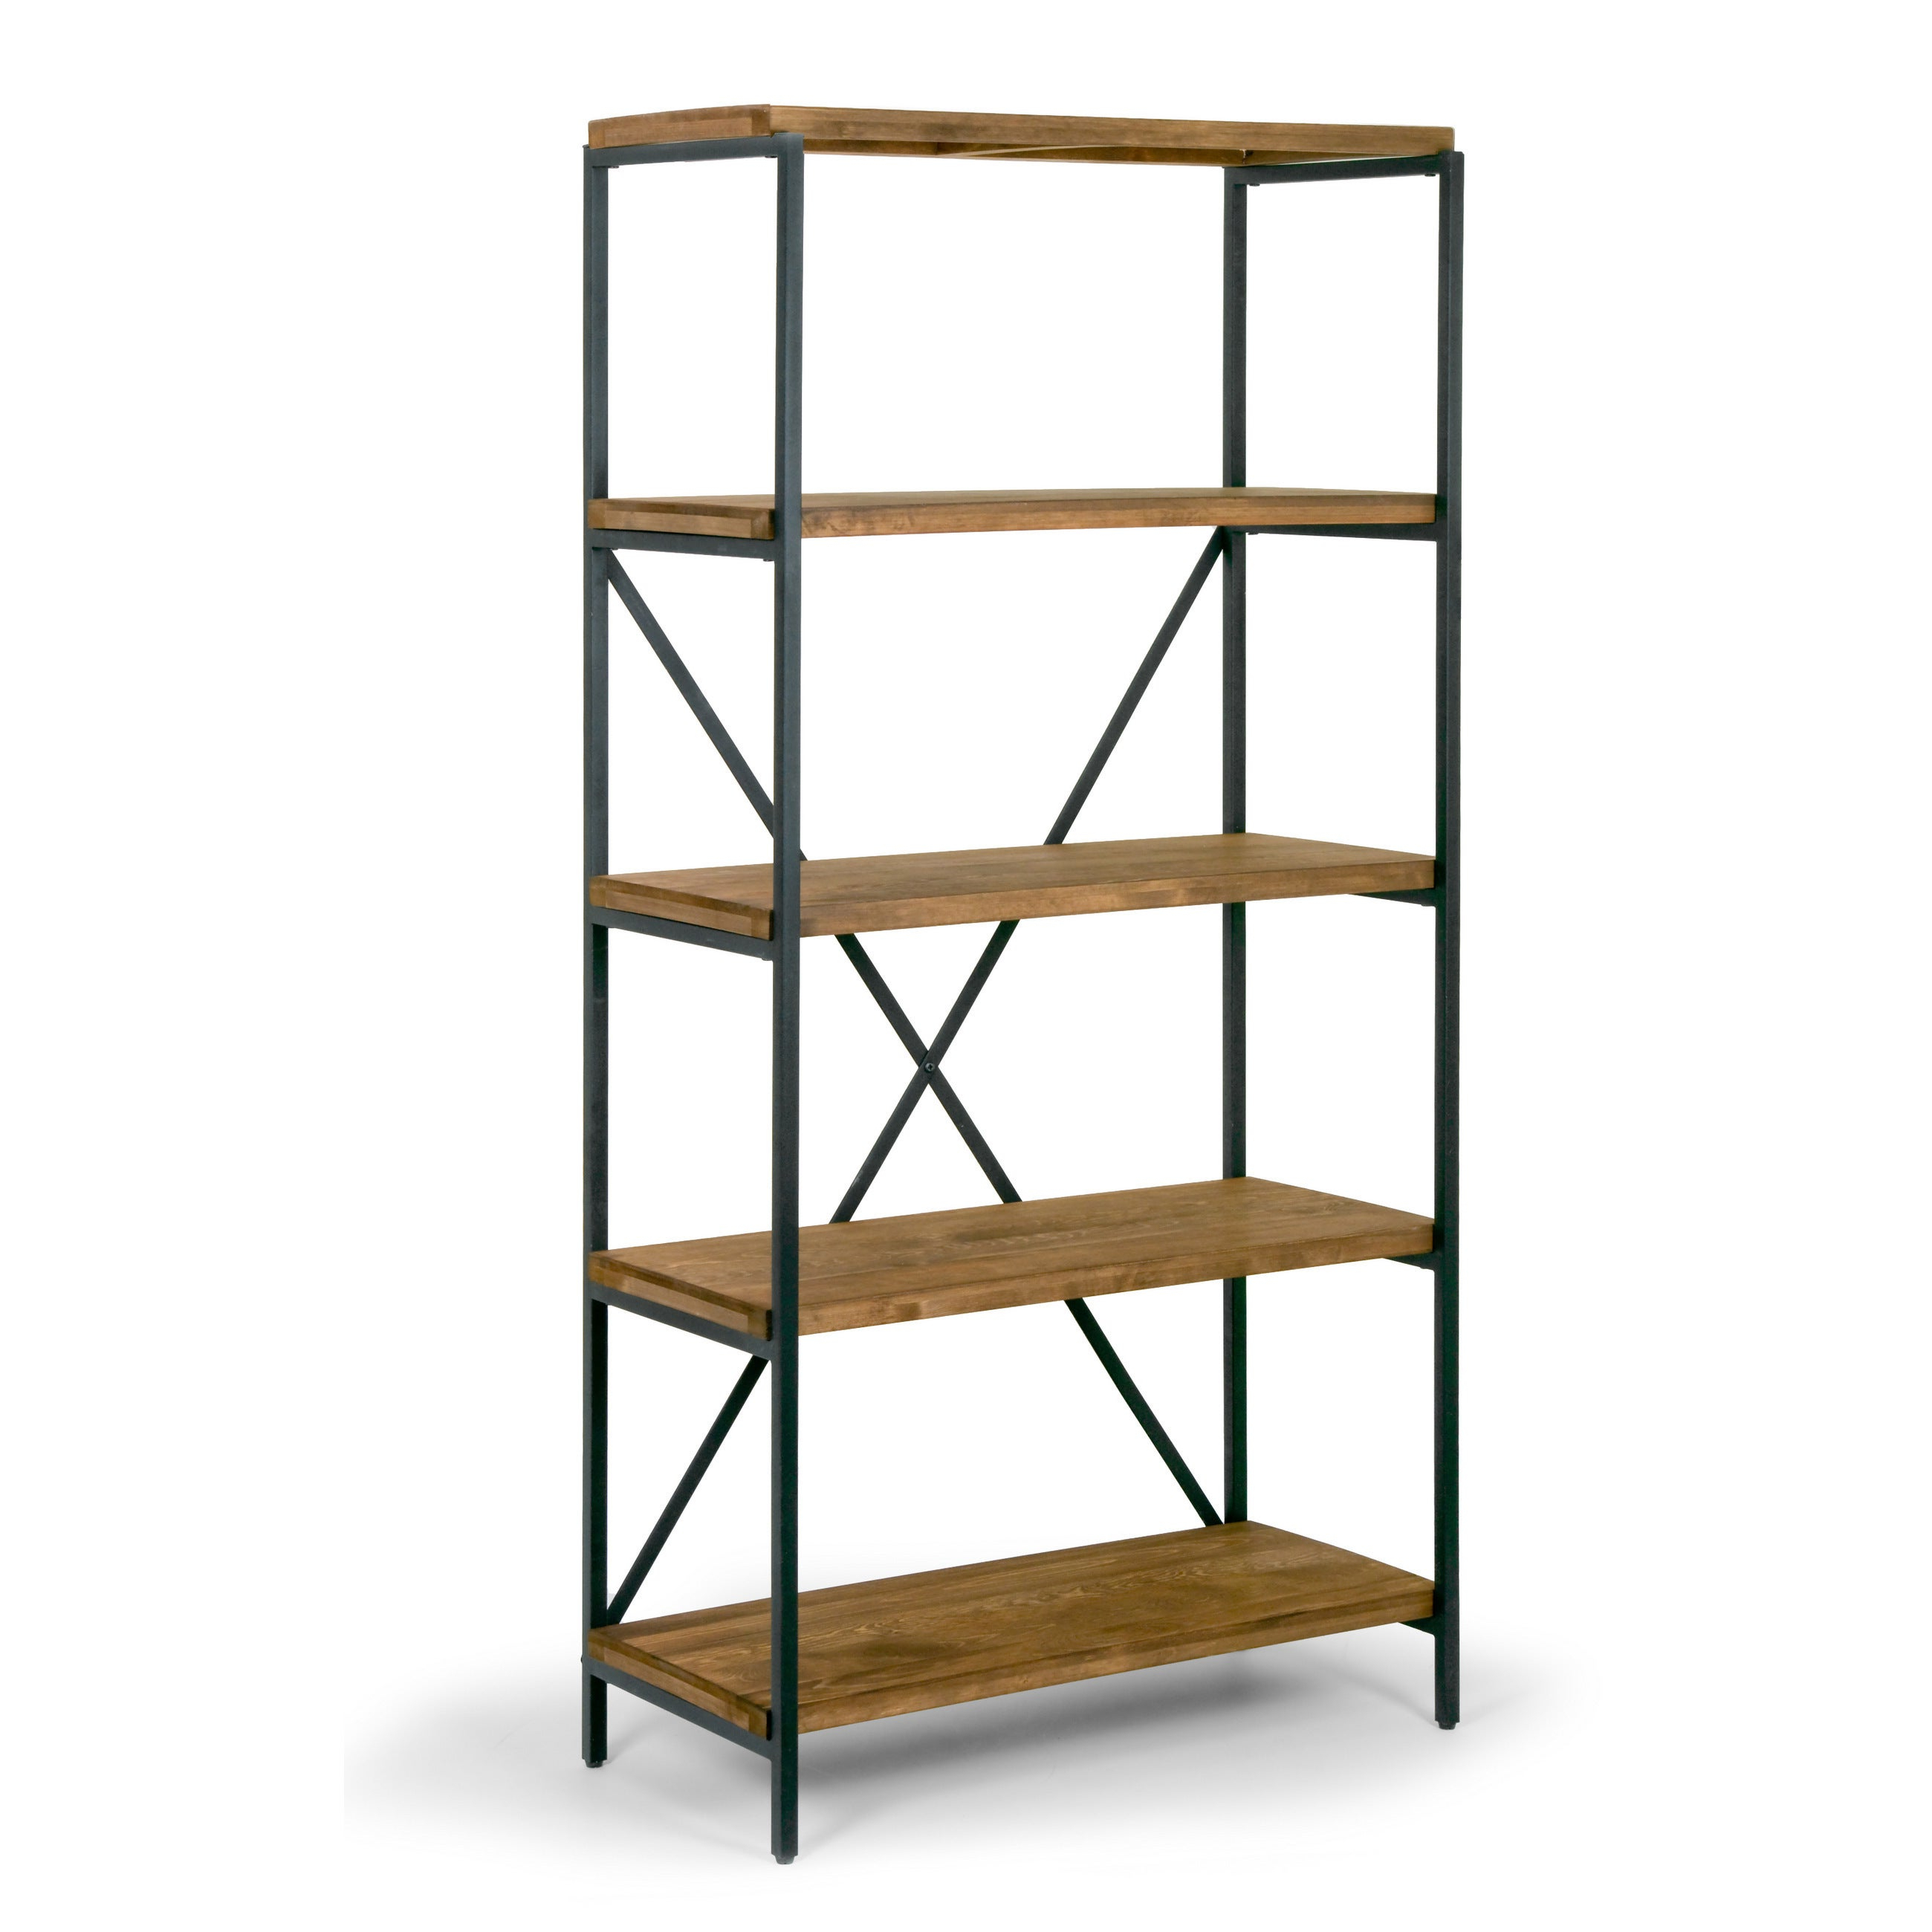 Poynor Etagere Bookcases Inside Well Liked Buy Etagere Bookshelves & Bookcases Online At Overstock (Gallery 15 of 20)